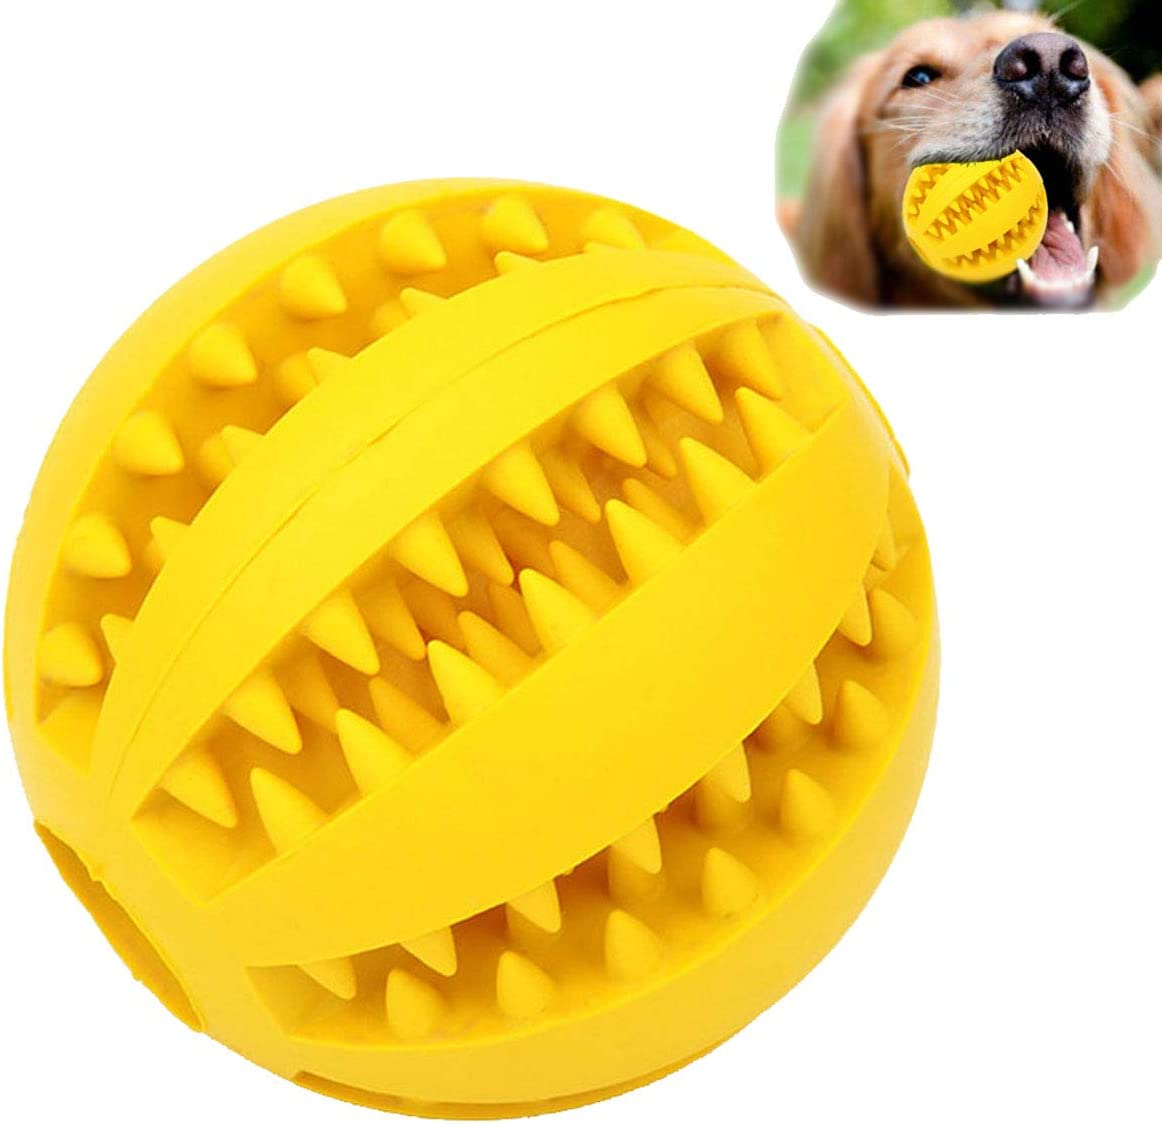 Dog Toy Ball, Nontoxic Bite Resistant Toy Ball for Pet Dogs Puppy Cat, Dog Pet Food Treat Feeder Chew Tooth Cleaning Ball Exercise Game IQ Training Toy Ball,Large / Medium / Small Dogs Toy.